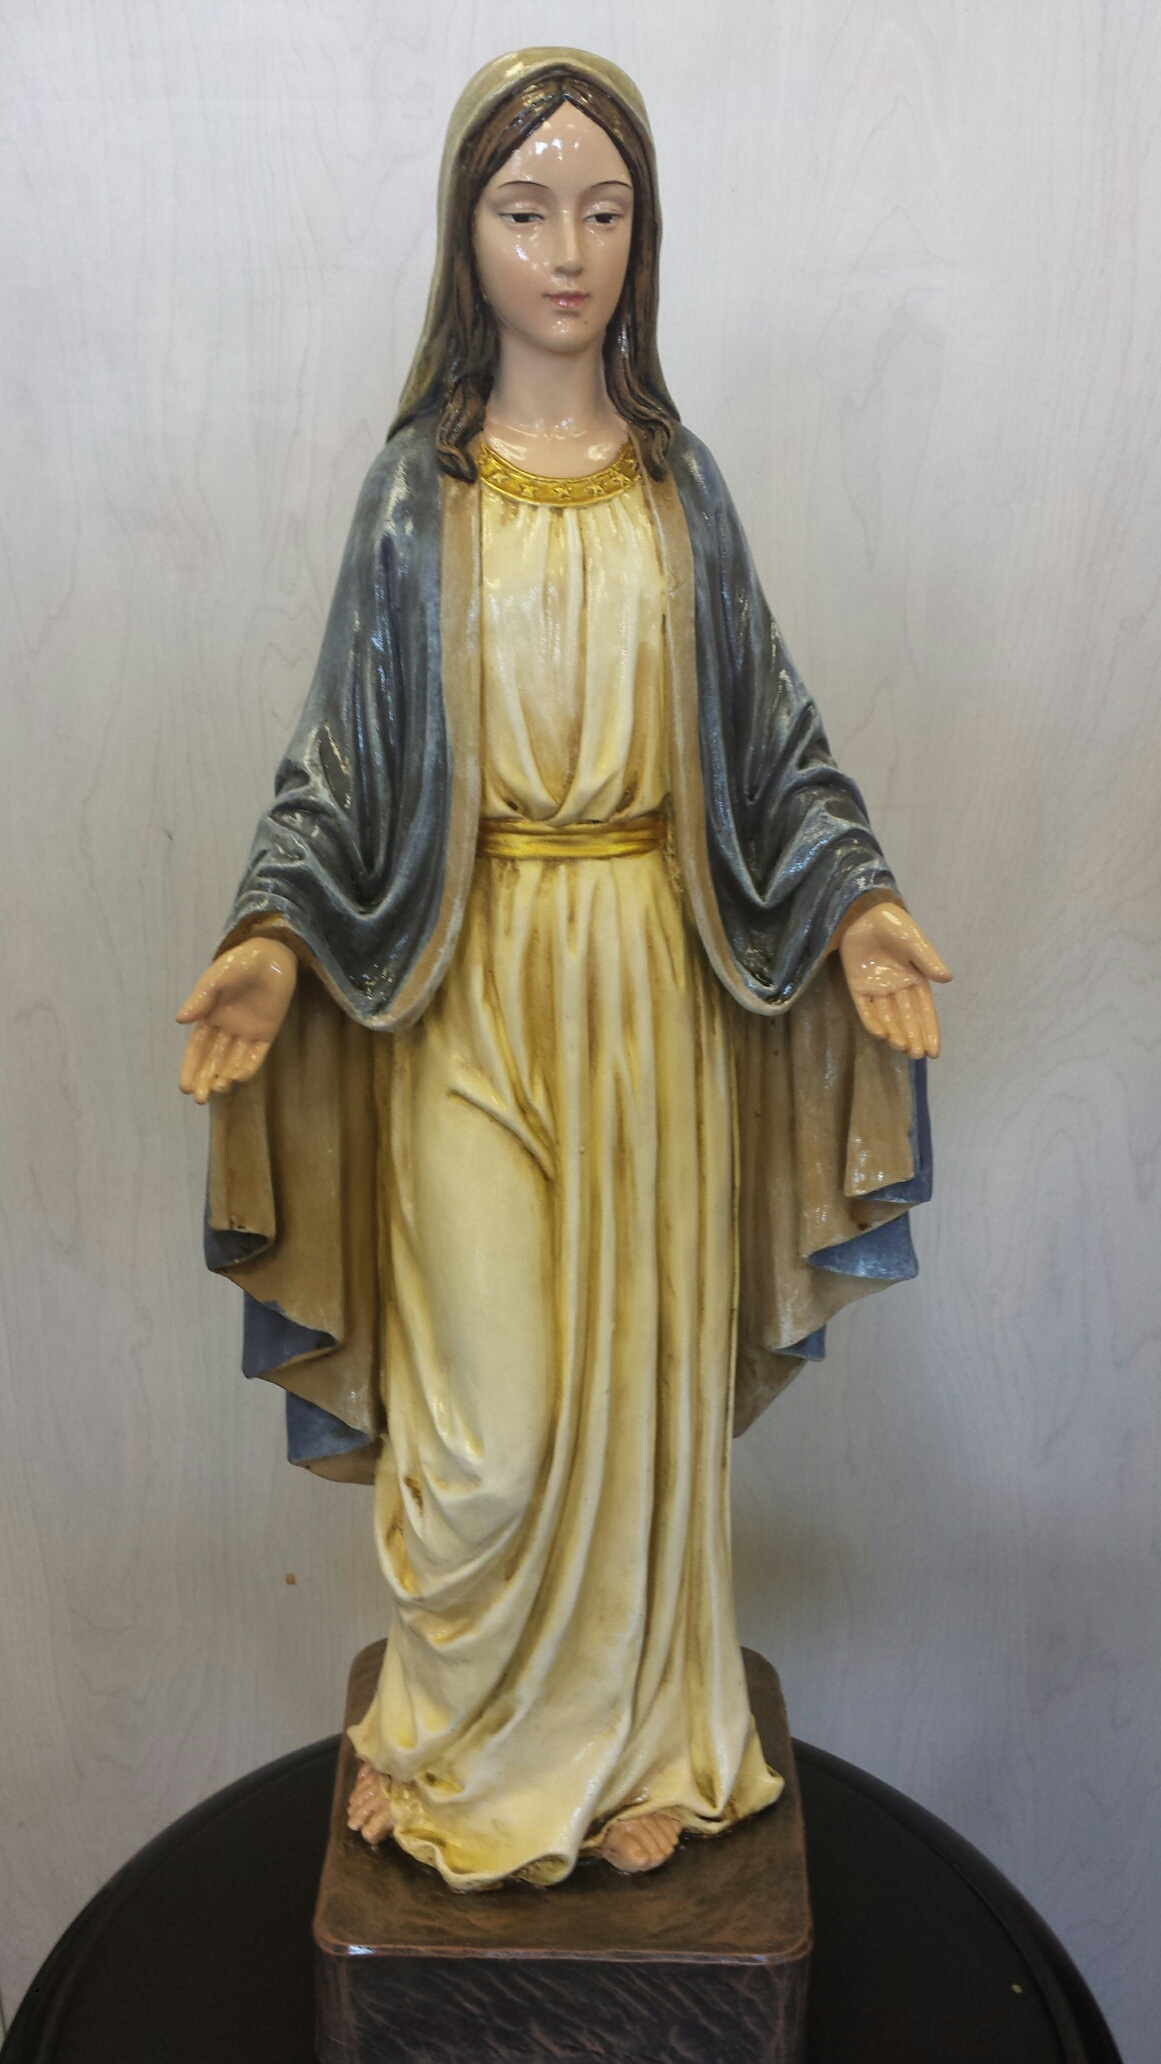 Our Lady of Grace $124.99